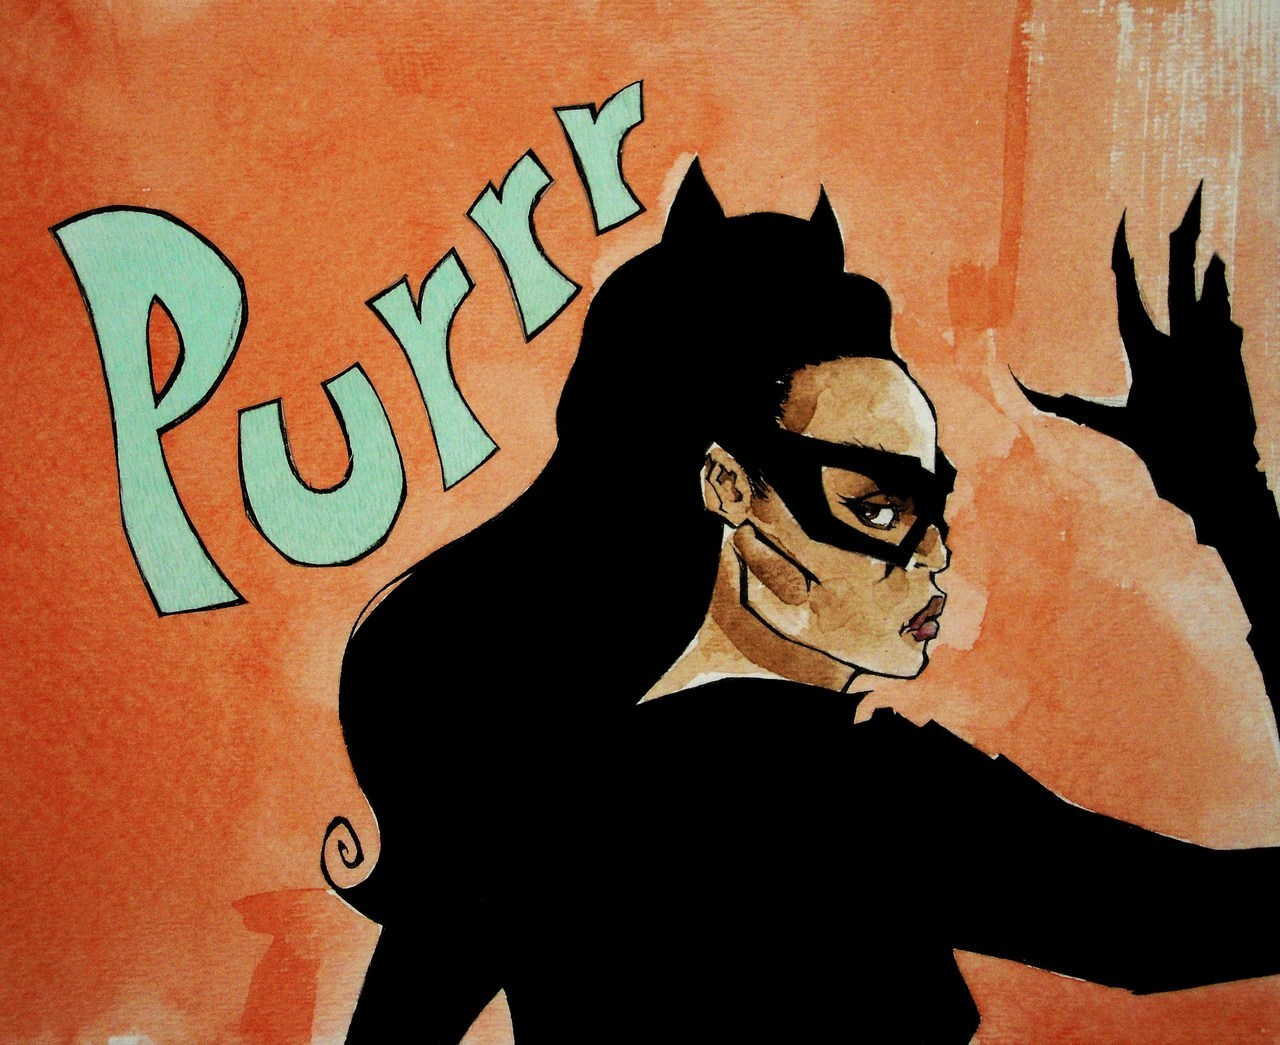 "Day 3 of ""The Dark Knight Rises"" Catwoman countdown: Eartha Kitt. ""Purrr-fect"", This Catwoman was made famous for her purr! Eartha Kitt took over the role of Catwoman in the ""Batman"" TV series from 1967-68. She was only in 5 episodes but she has gone down in Batman history as one of the best! Eartha Kitt as Catwoman, illustrated by Christian Cimoroni, pen and ink/watercolor"